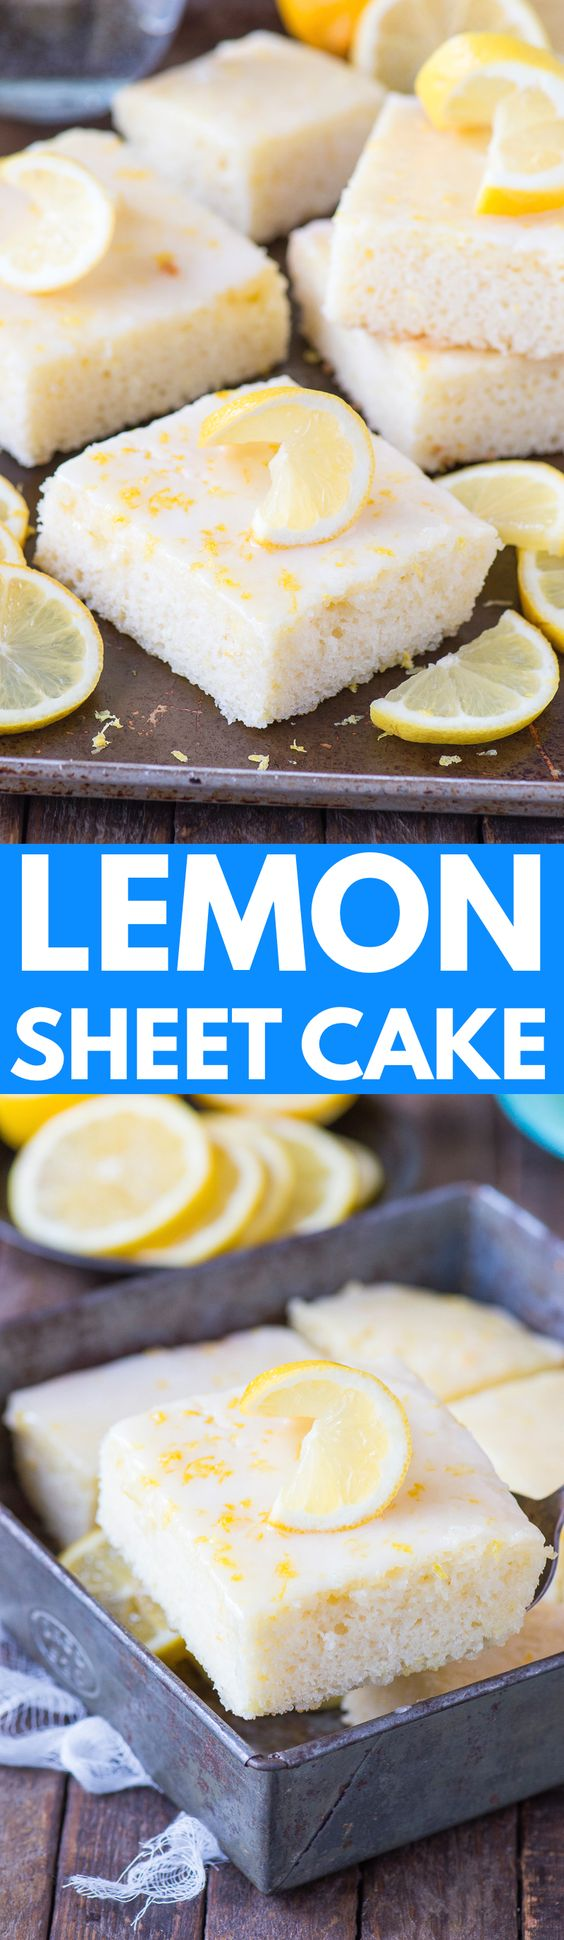 Easy Lemon Sheet Cake Recipe via The First Year - The best lemon cake made in a 9x13 inch pan with a fresh and quick lemon glaze! The Best EASY Sheet Cakes Recipes - Simple and Quick Party Crowds Desserts for Holidays, Special Occasions and Family Celebrations